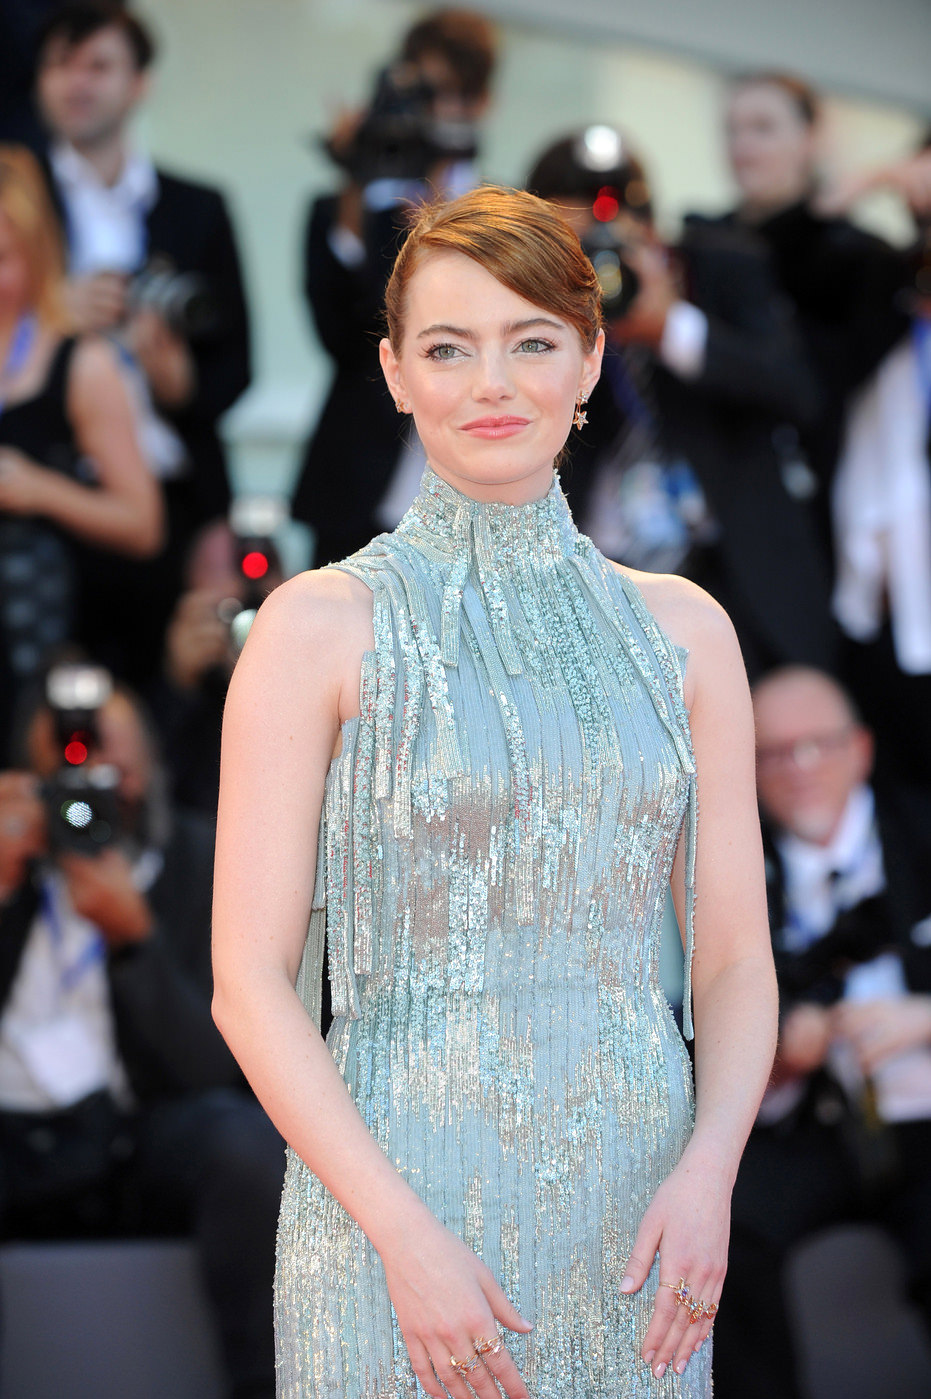 Emma-Stone-La-La-Land-Premiere-Venice-Film-Festival-2016-Red-Carpet-Fashion-Atelier-Versace-Tom-Lorenzo-Site (1)